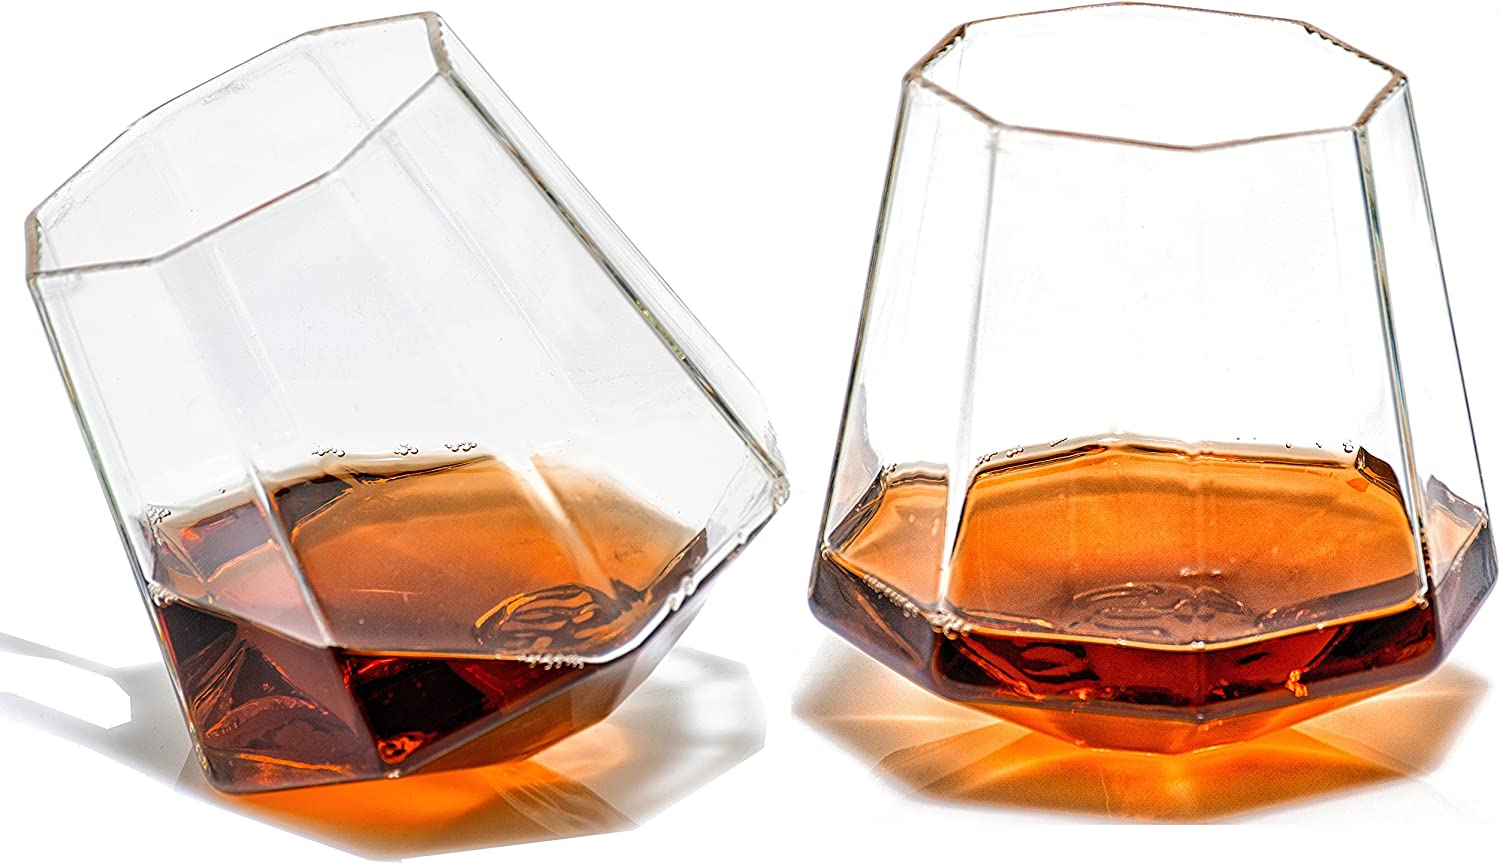 Diamond Whiskey Glasses - Rocks Glass for Rum, Tequila, Scotch Glasses - Whiskey Gifts - 10oz Cocktail, Lowball, Old Fashioned Glass (Set of 2) Unique Bar Decor & Bourbon Gifts by Prestige Decanters